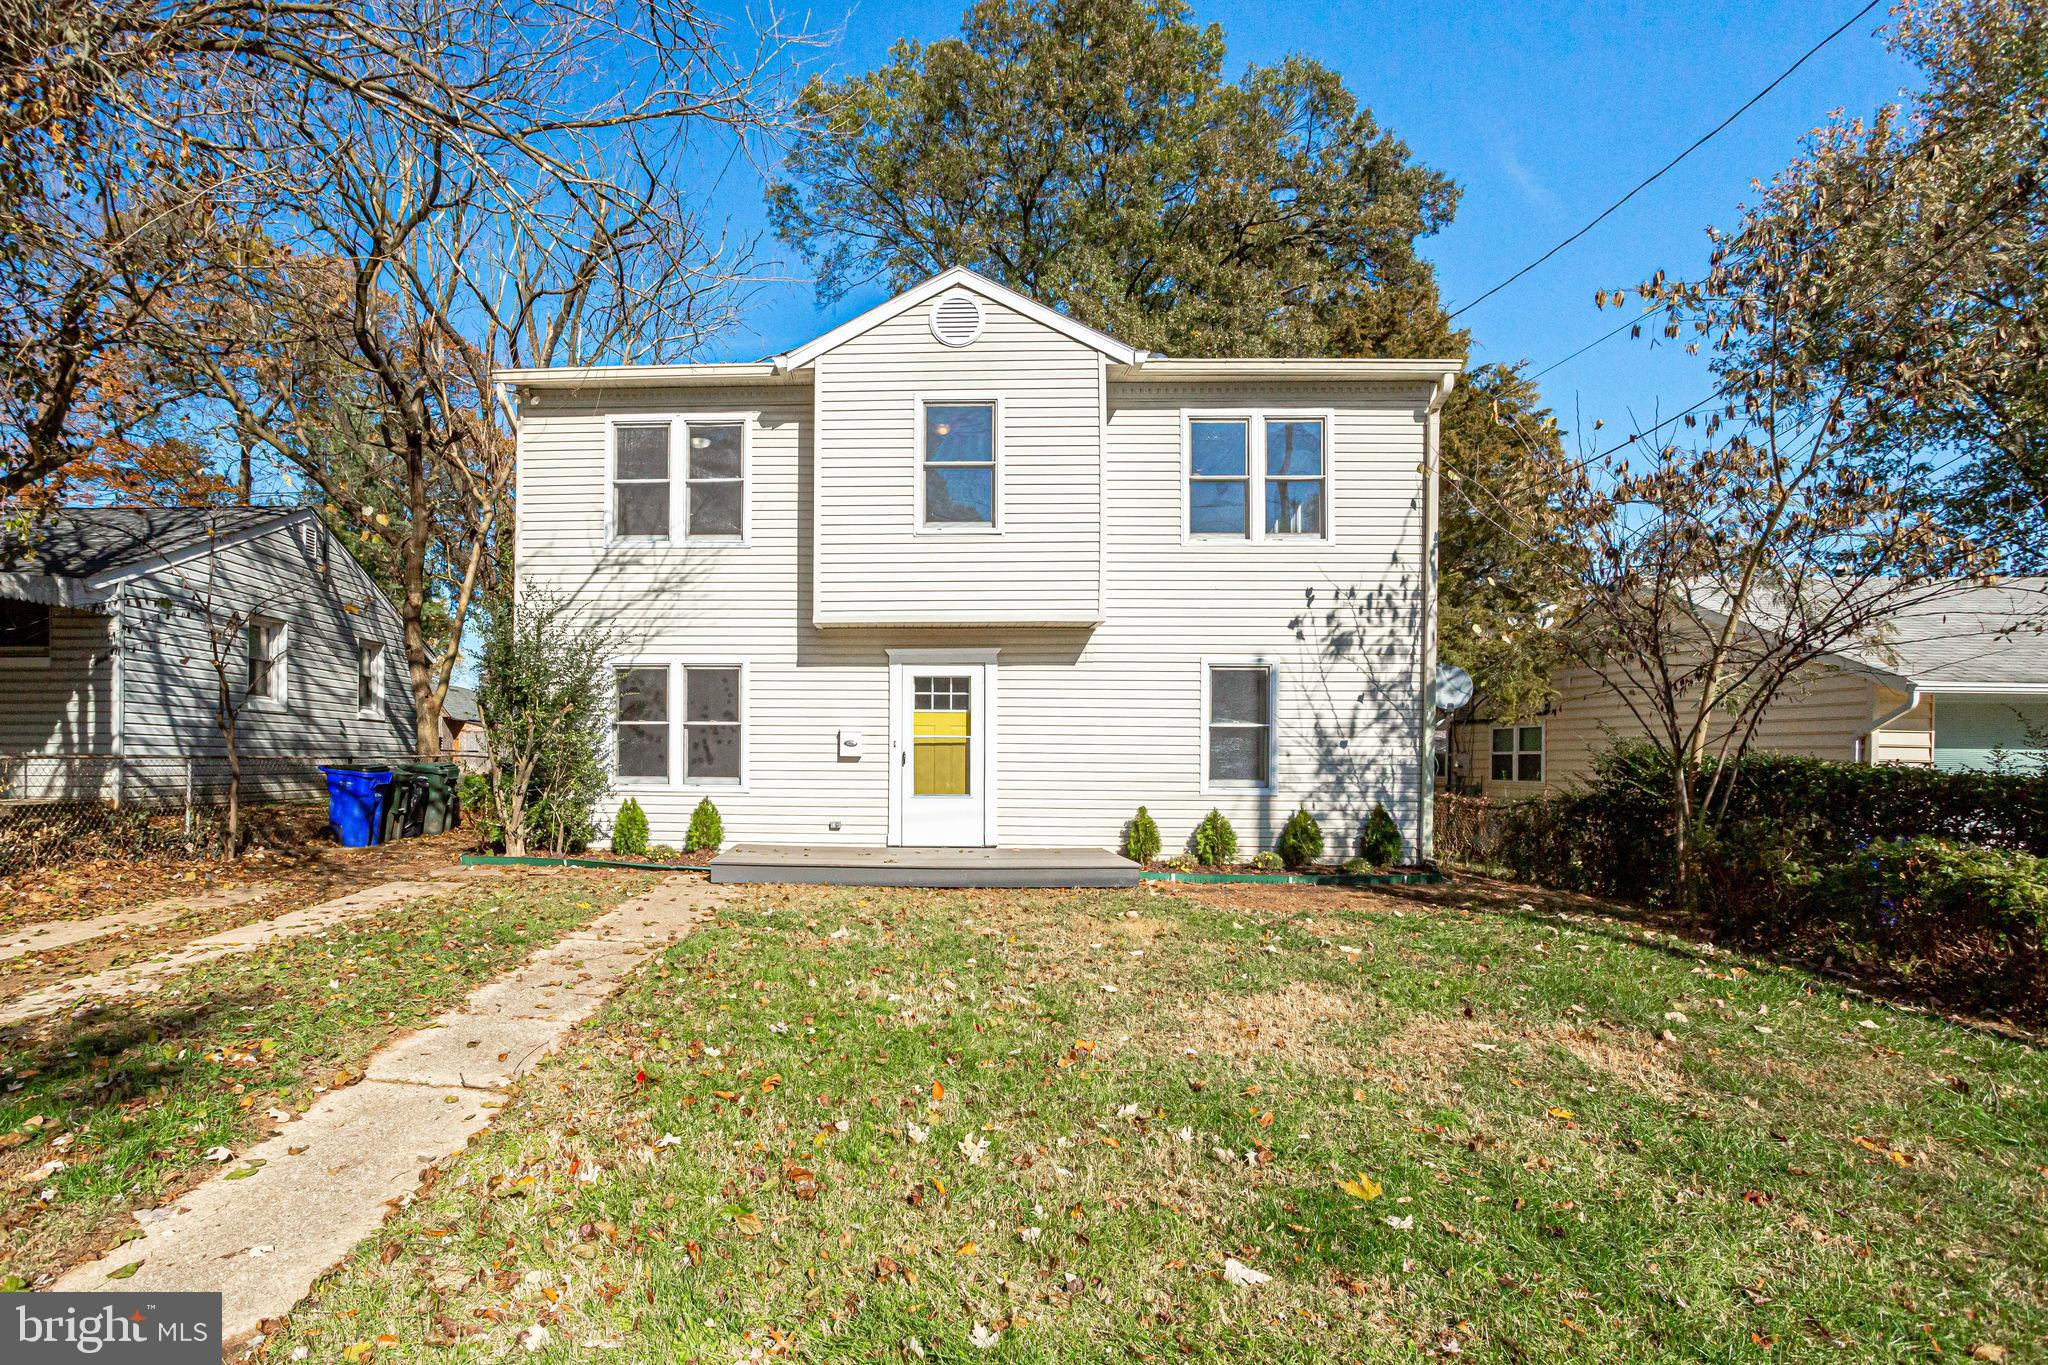 5118 KENNEBUNK TERRACE, COLLEGE PARK, MD 20740